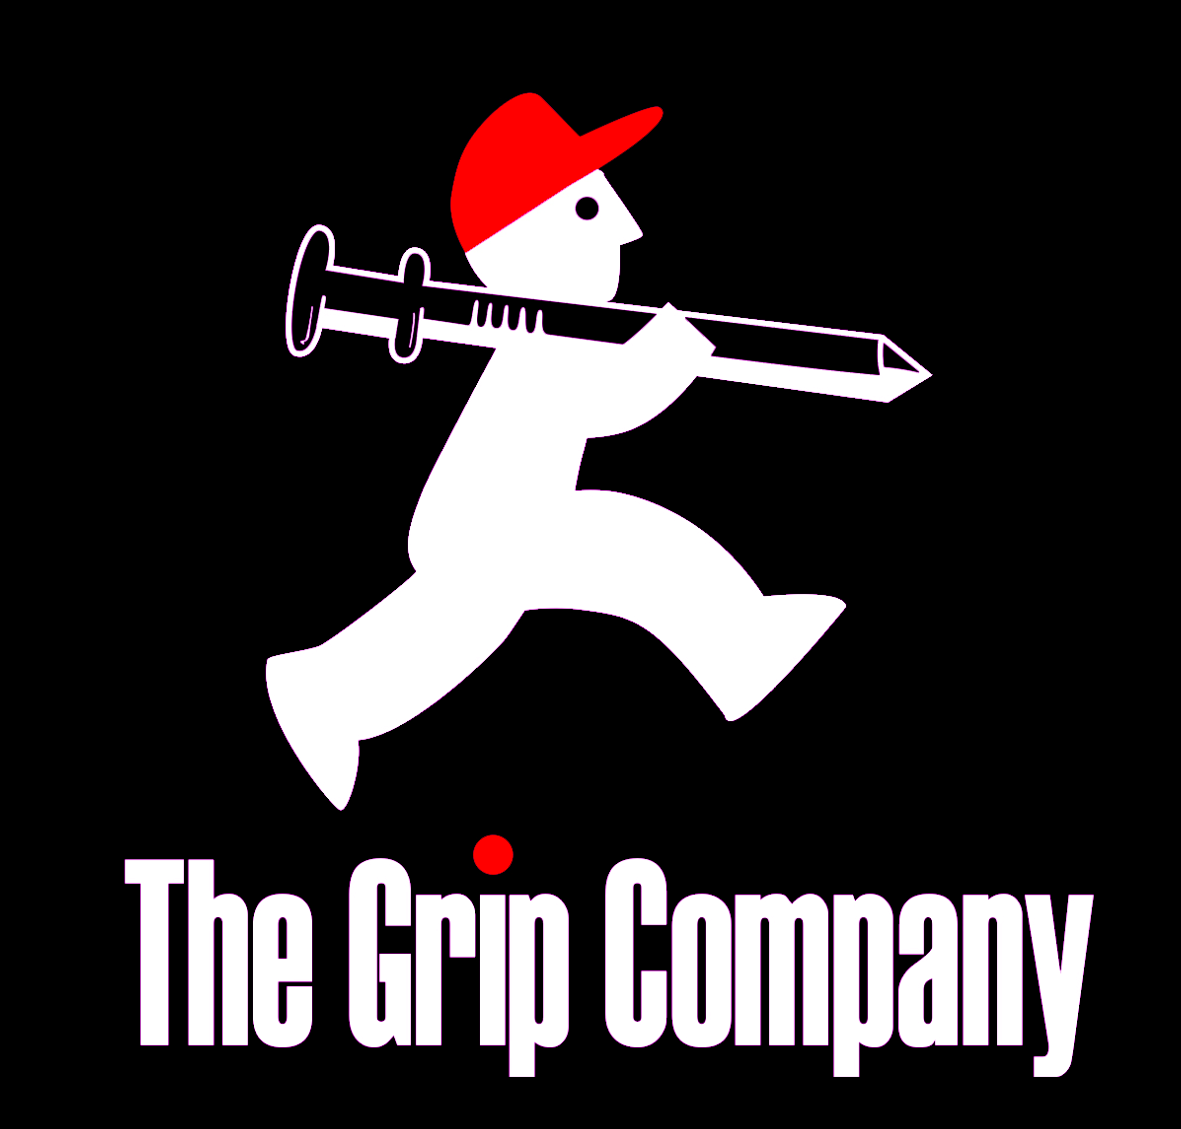 The Grip Company